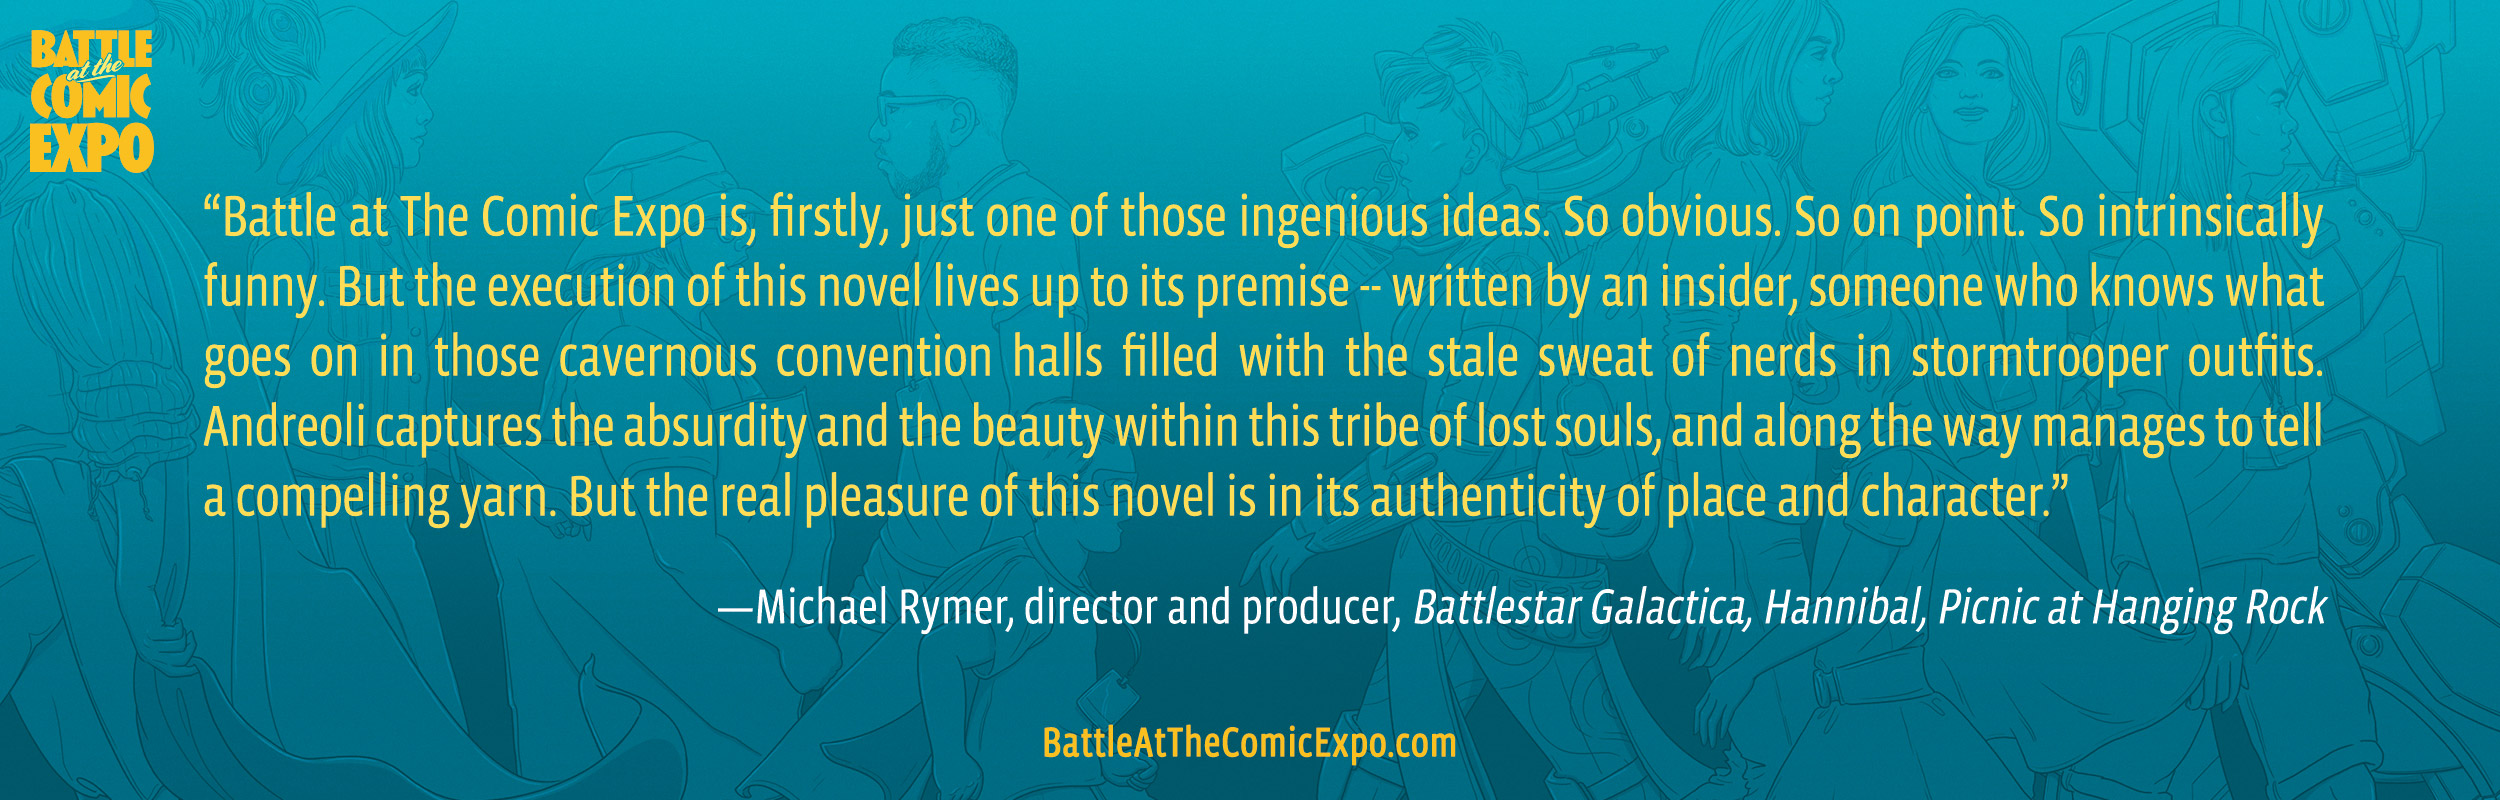 batce_quote_banner_michaelrymer.jpg